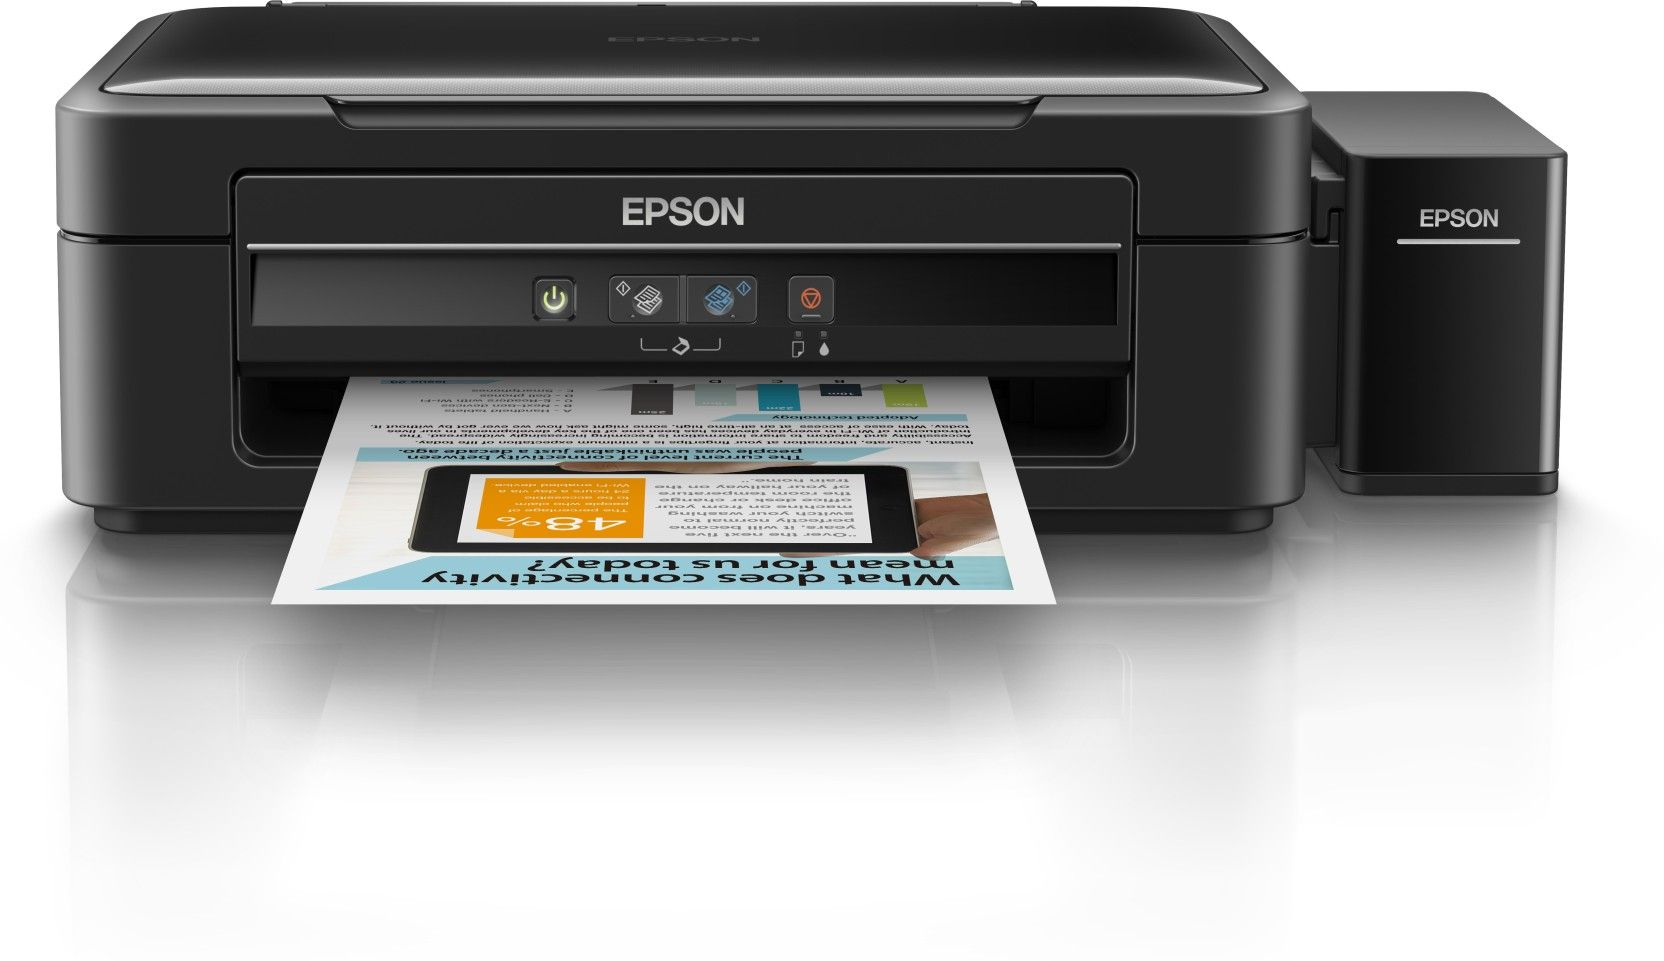 Our technicians are trained to handle Epson printer